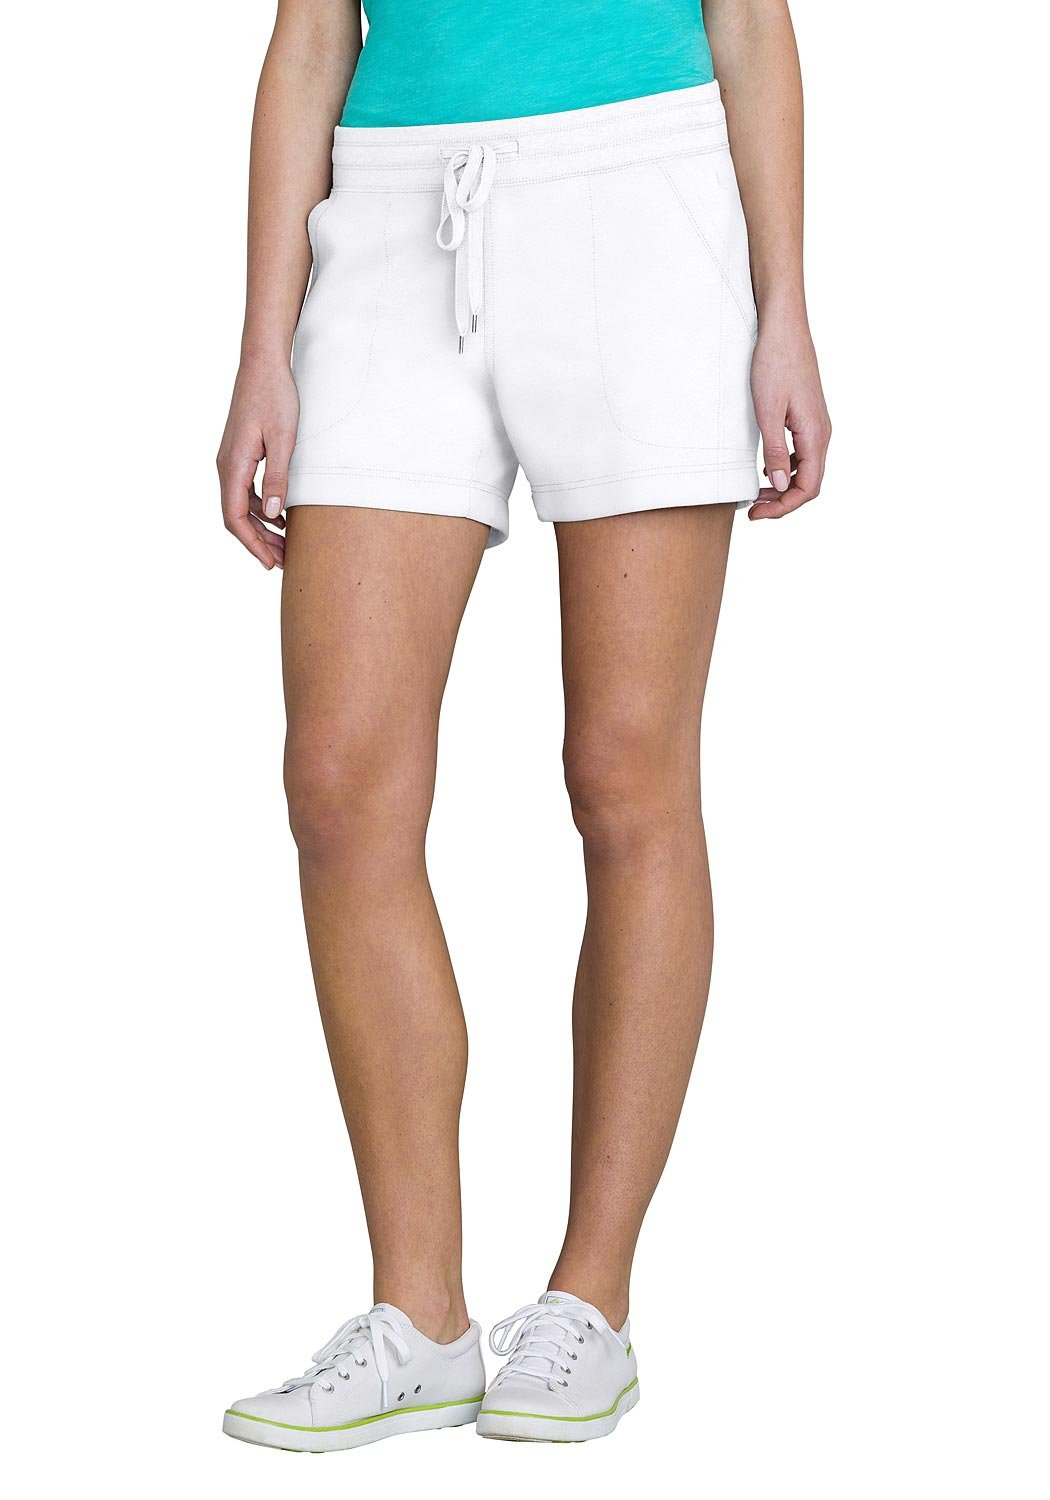 Eddie Bauer Damen French Terry-Shorts: Eddie Bauer: Amazon.de: Bekleidung